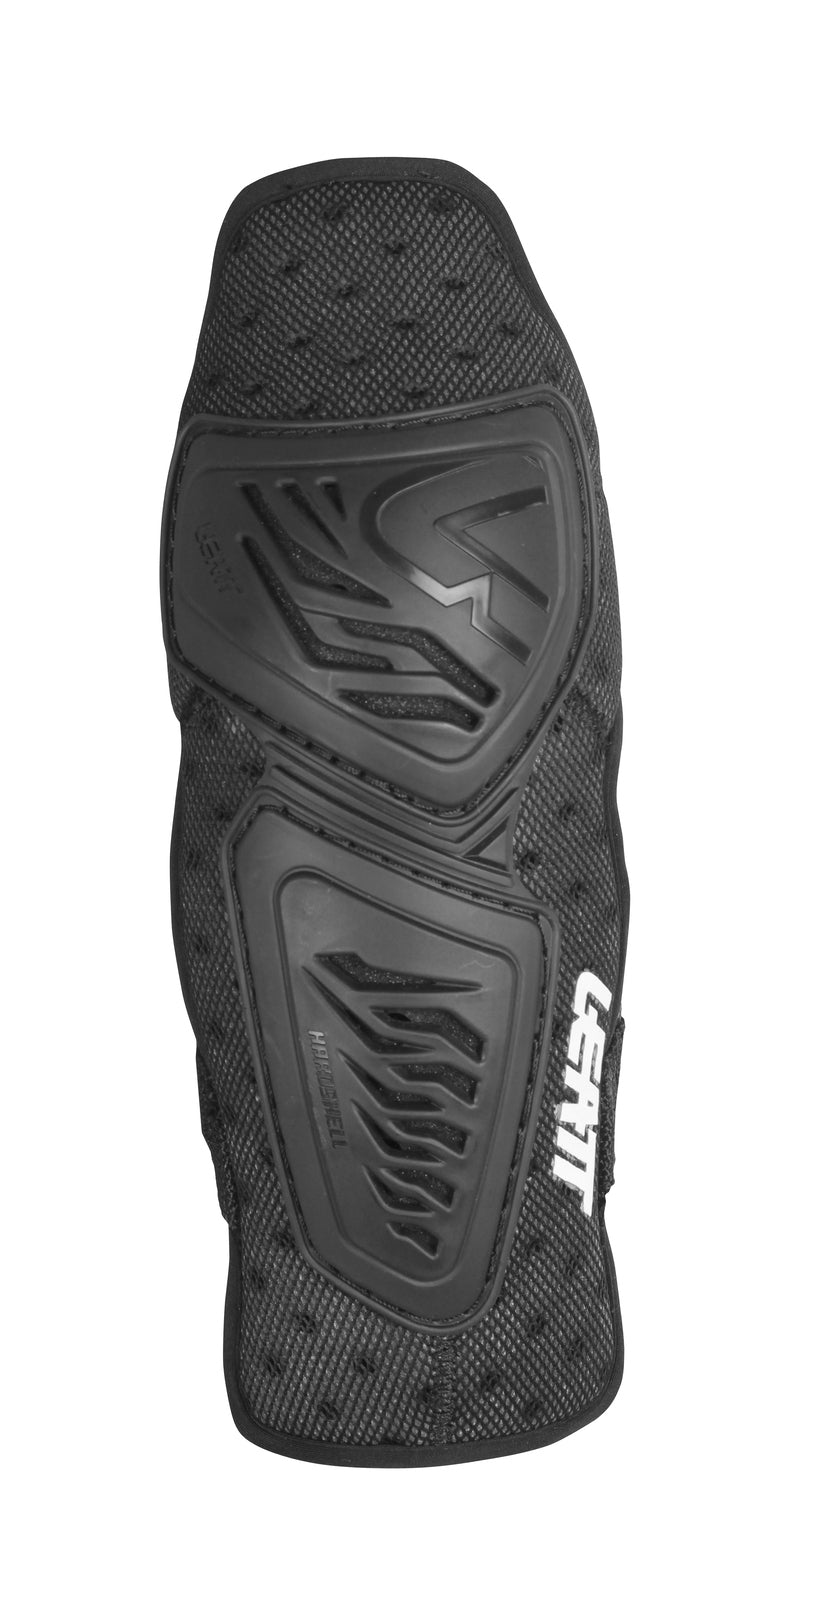 Leatt 3.0 Elbow Guard 2021